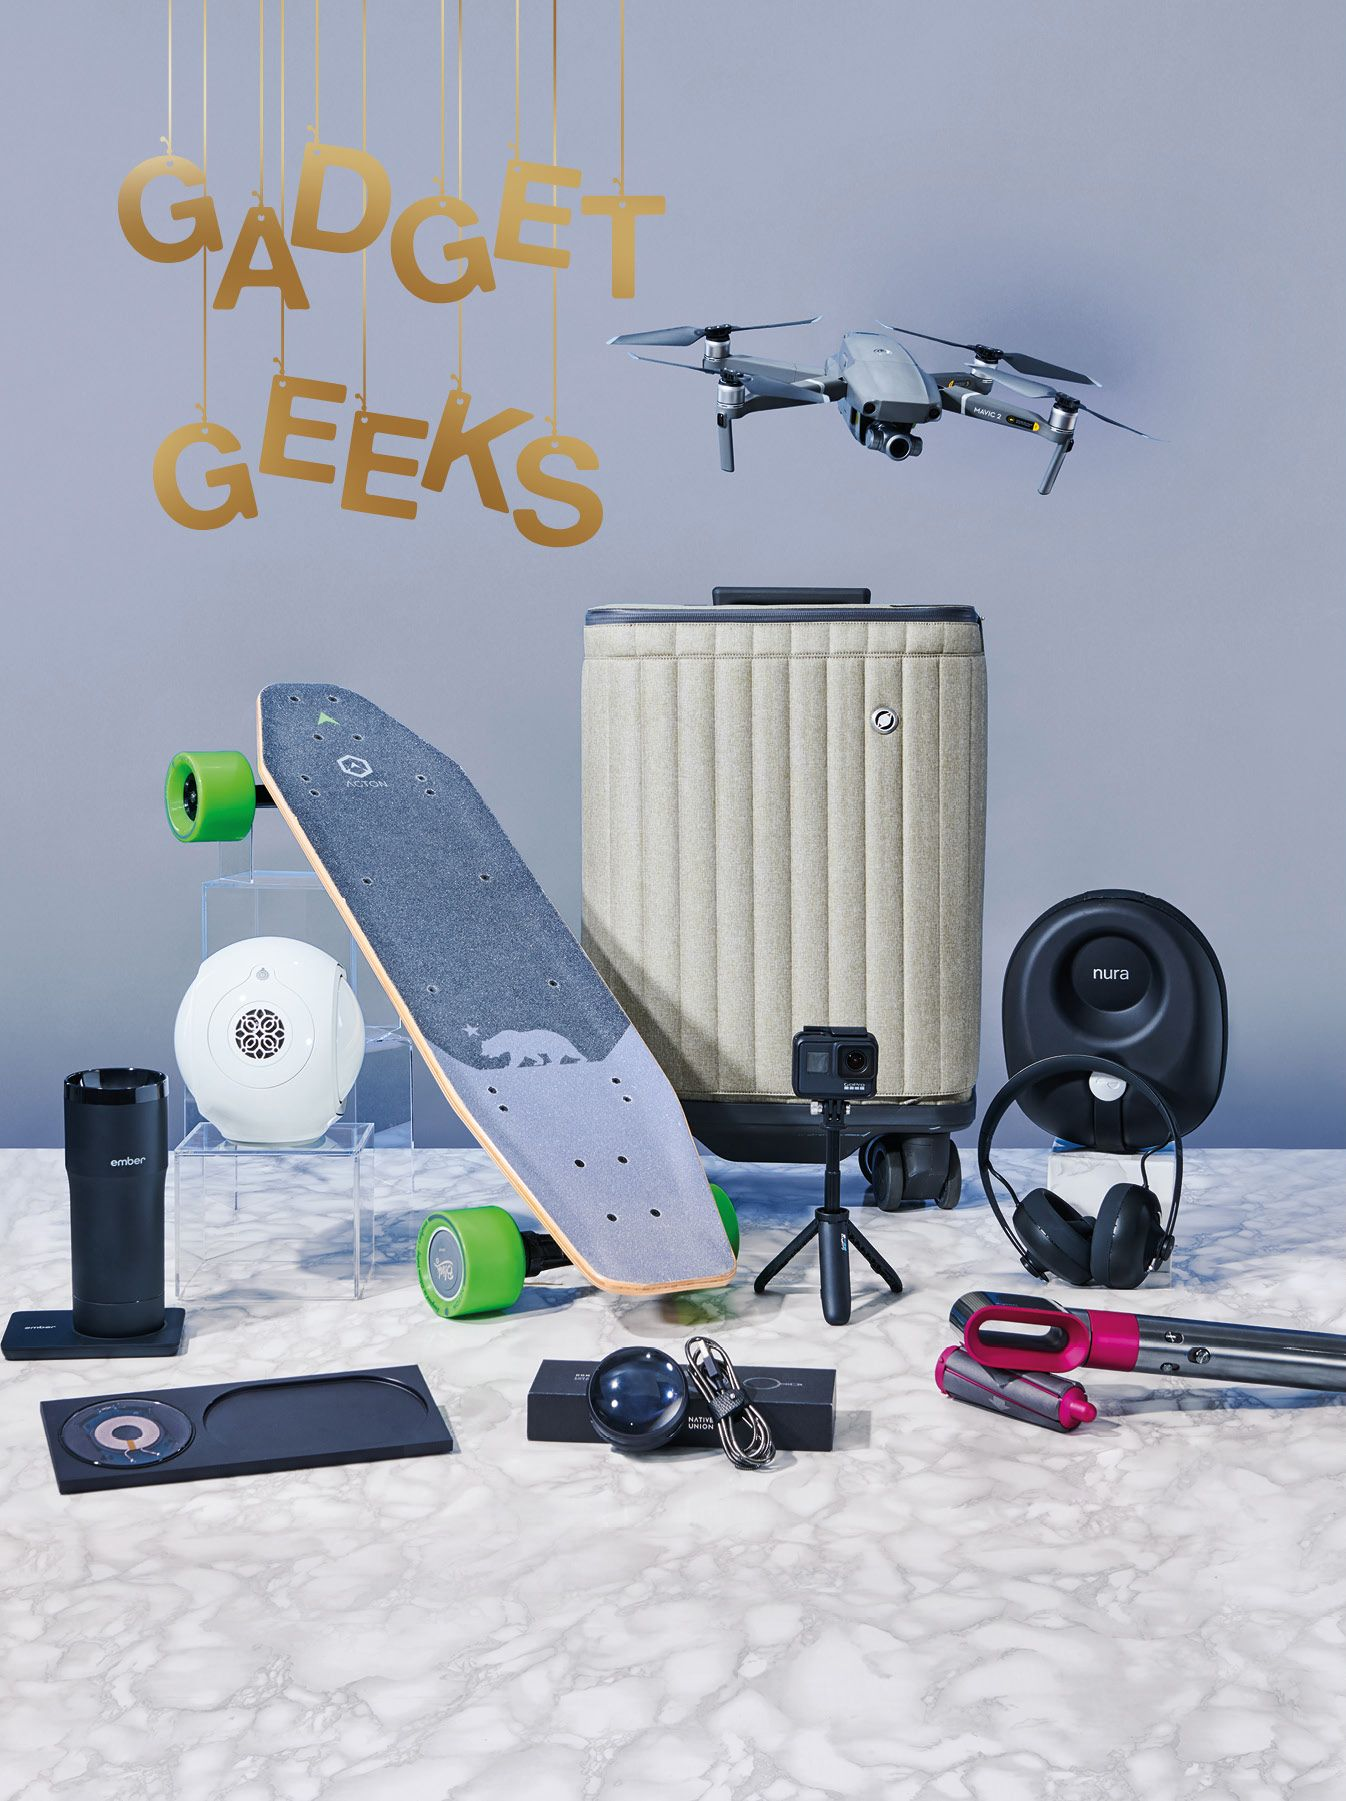 20 Best Christmas Gift Ideas For Gadget Freaks